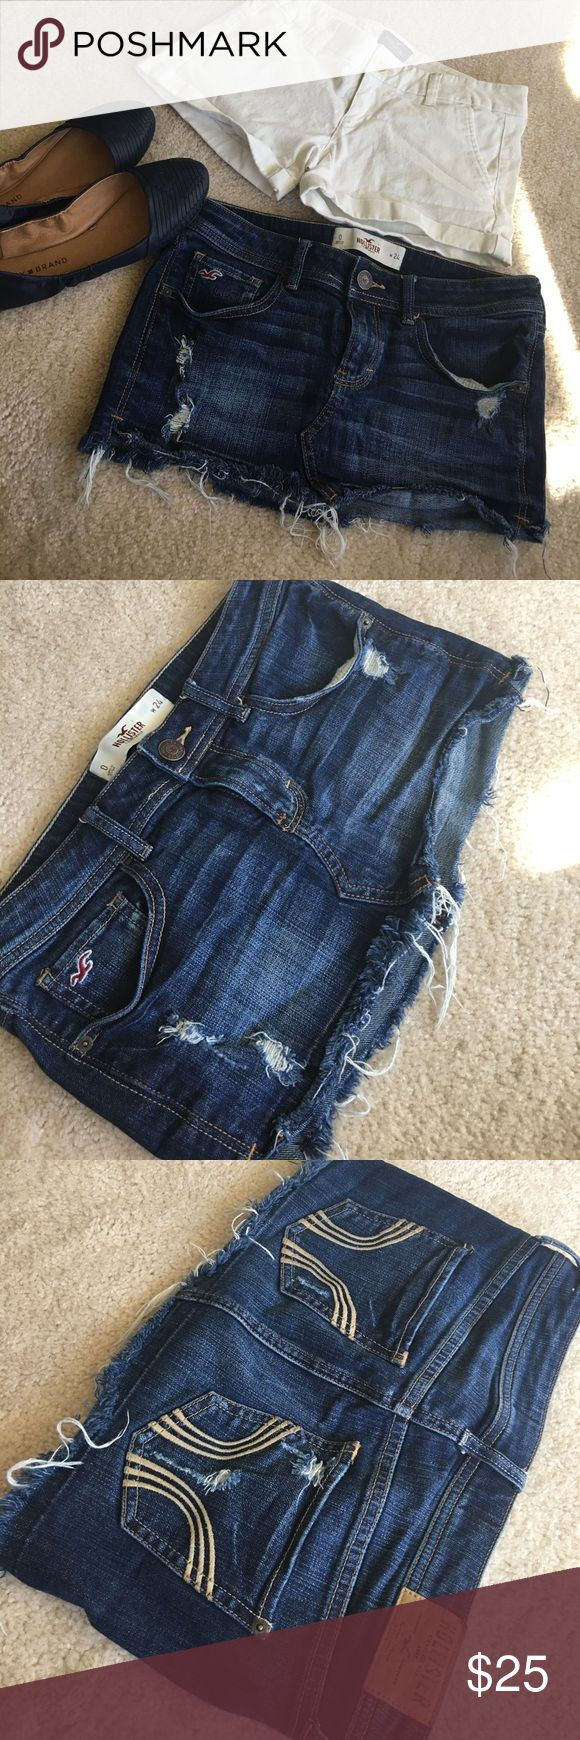 Bundle of Hollister skirt and AEO  short size 0/24 Both are in excellent used condition, no stain or holes, the skirt has a distress design and in good shape as you can see in the pic, very feminine and stylish chic for a cheap prices!! Smoke free and pet free home♥️♥️♥️ Hollister Skirts Mini